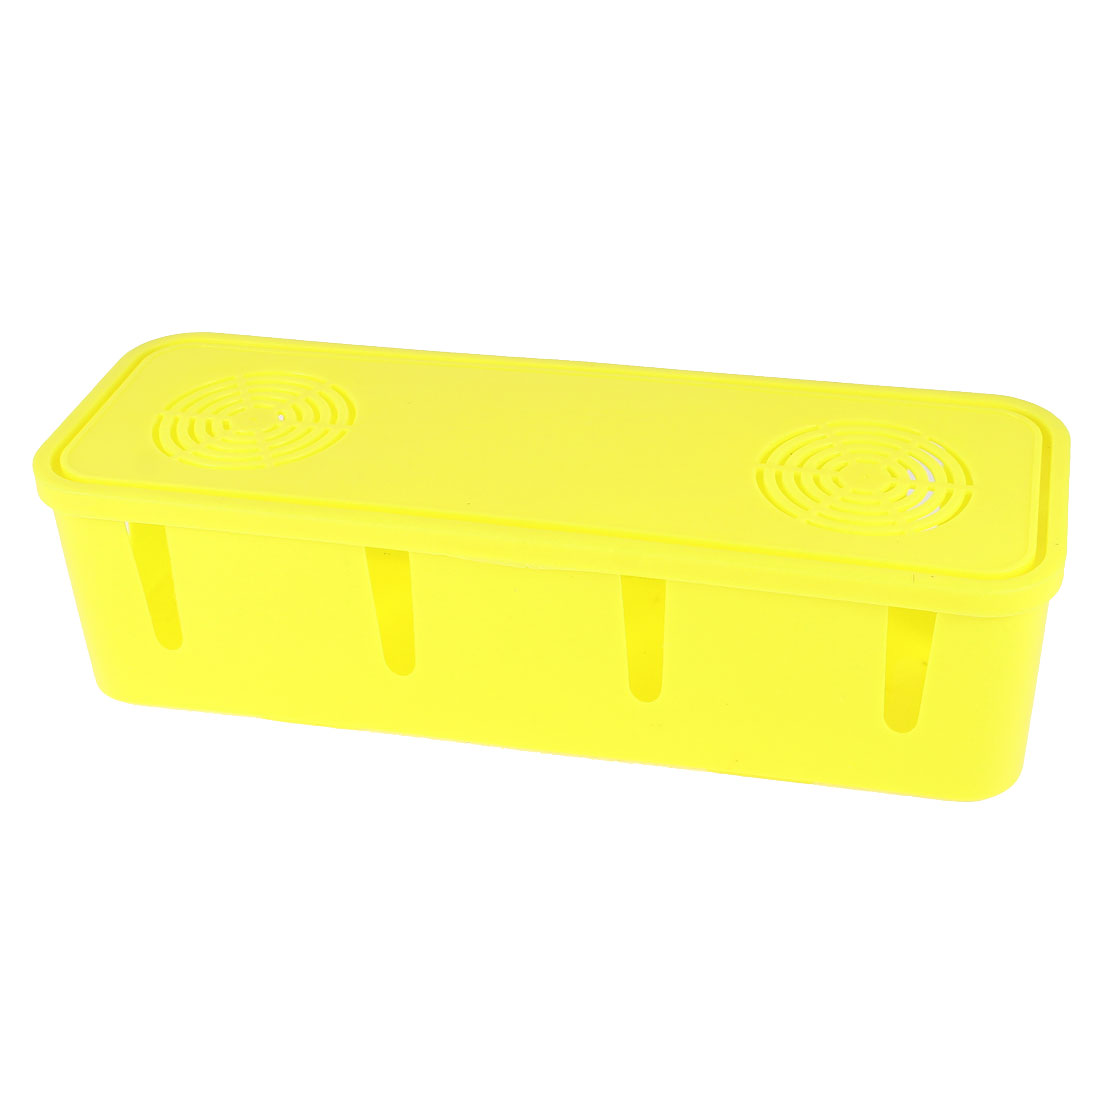 Yellow Plastic Power Connector Cable Cord Socket Storage Box Case